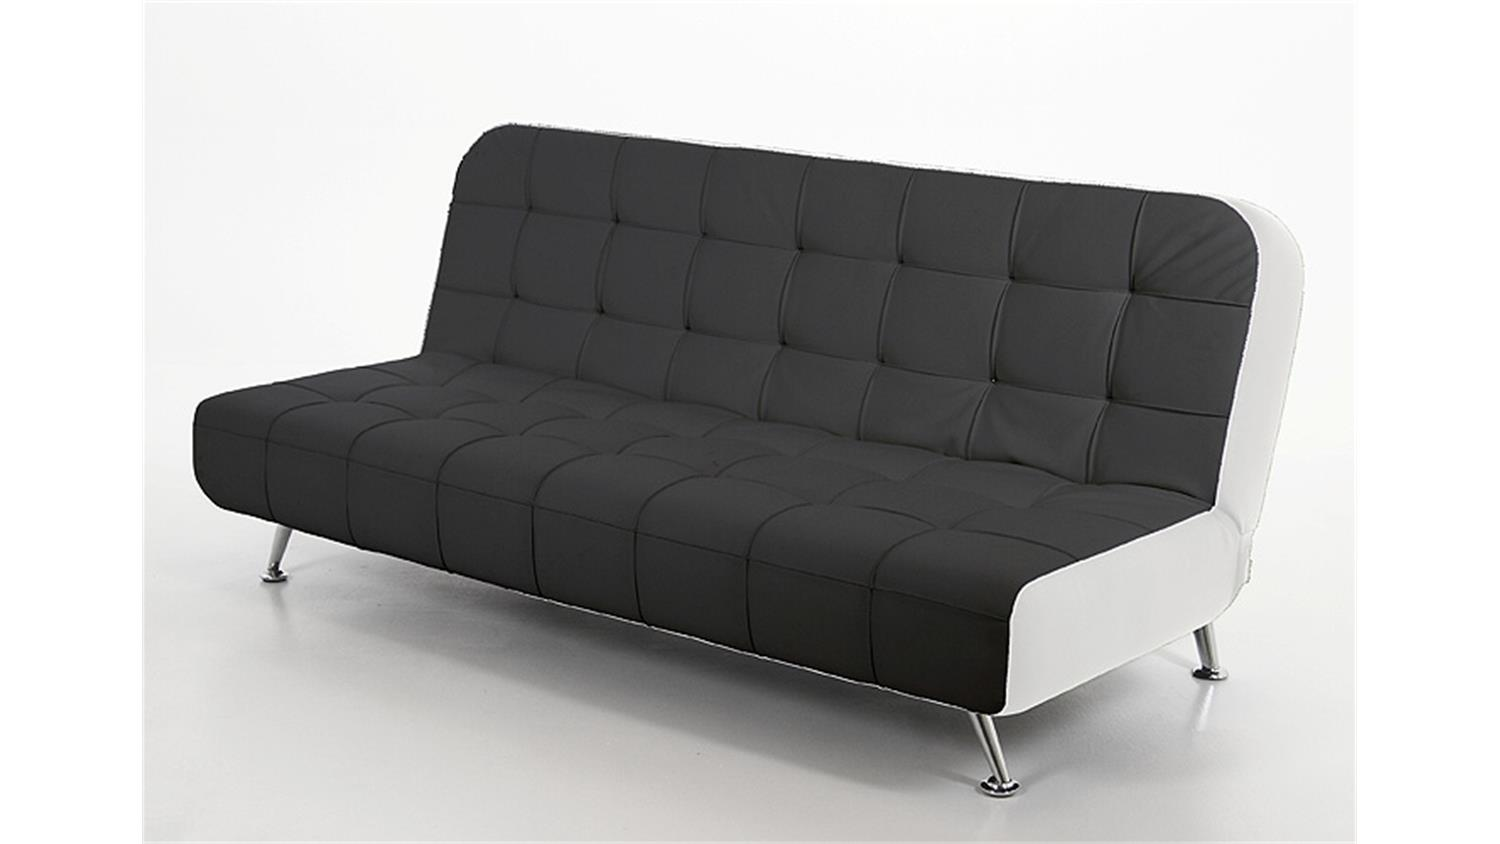 schlafsofa reggae sofa bettcouch in schwarz wei und chrom. Black Bedroom Furniture Sets. Home Design Ideas